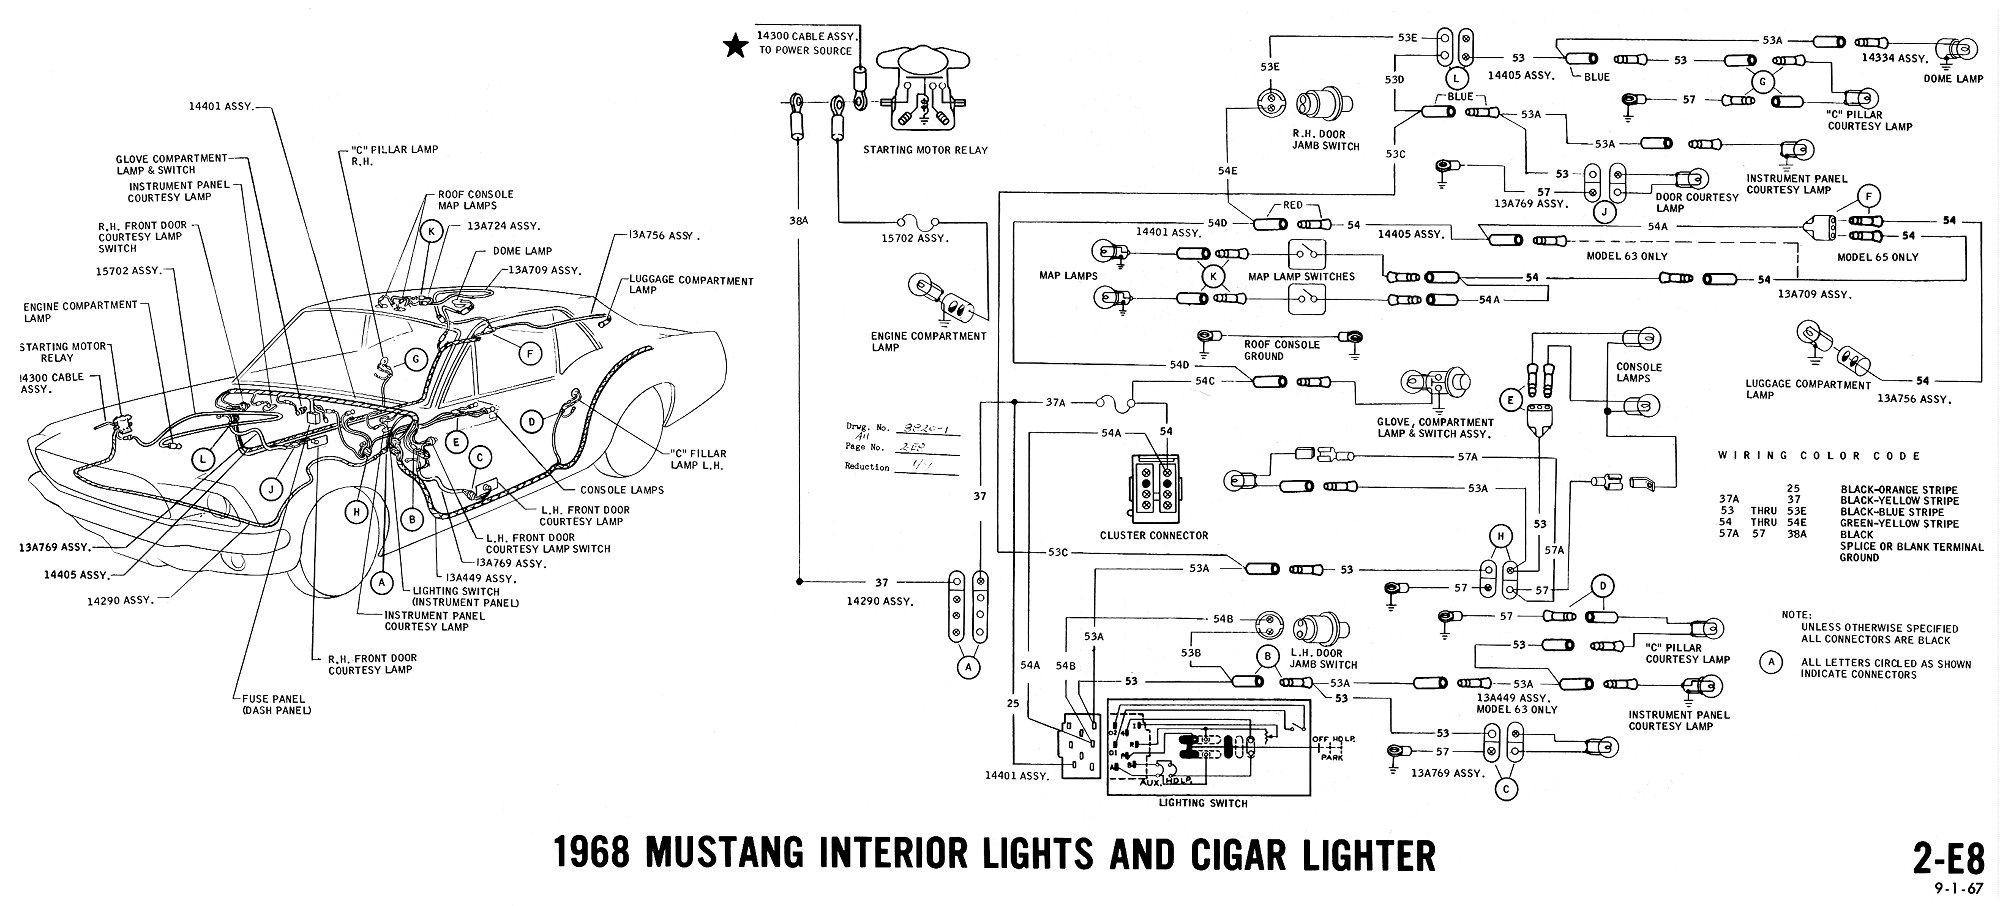 1968 Mustang Wiring Diagrams Evolving Software Diagram For Lamp Cigar Lighter Interior Lights